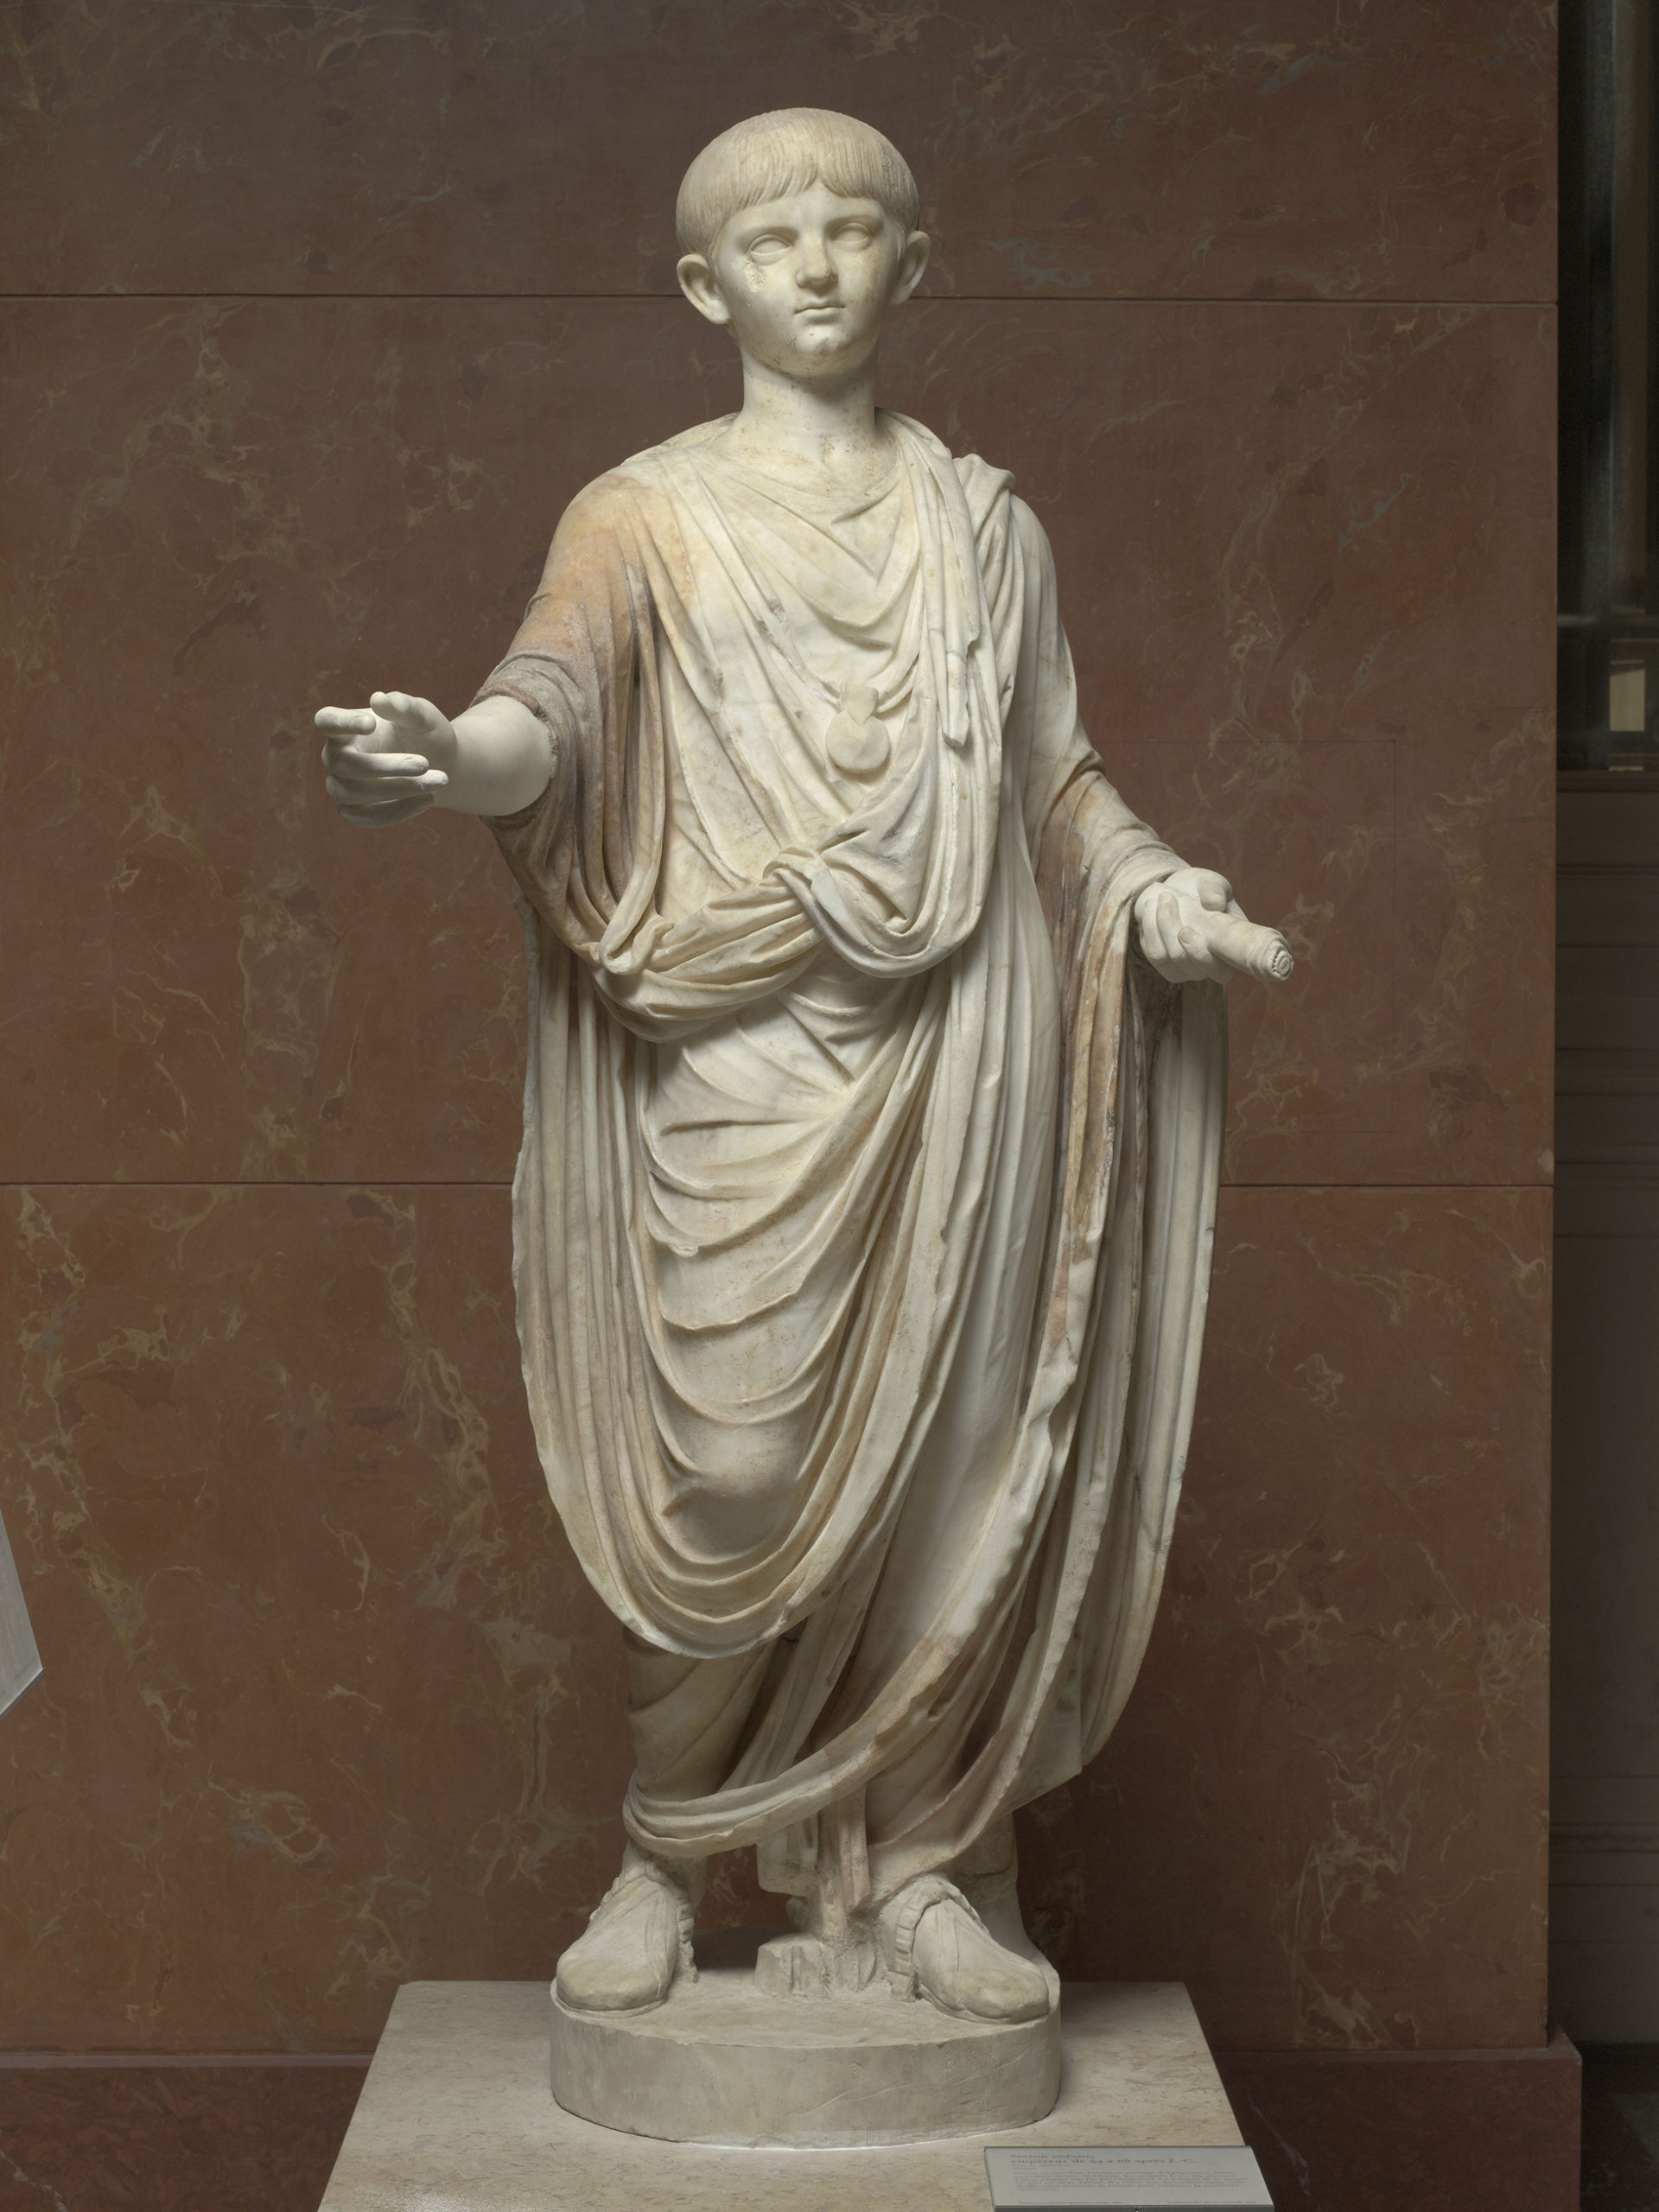 A cream coloured statue of a young Nero wearing a large toga, against a red marble wall.